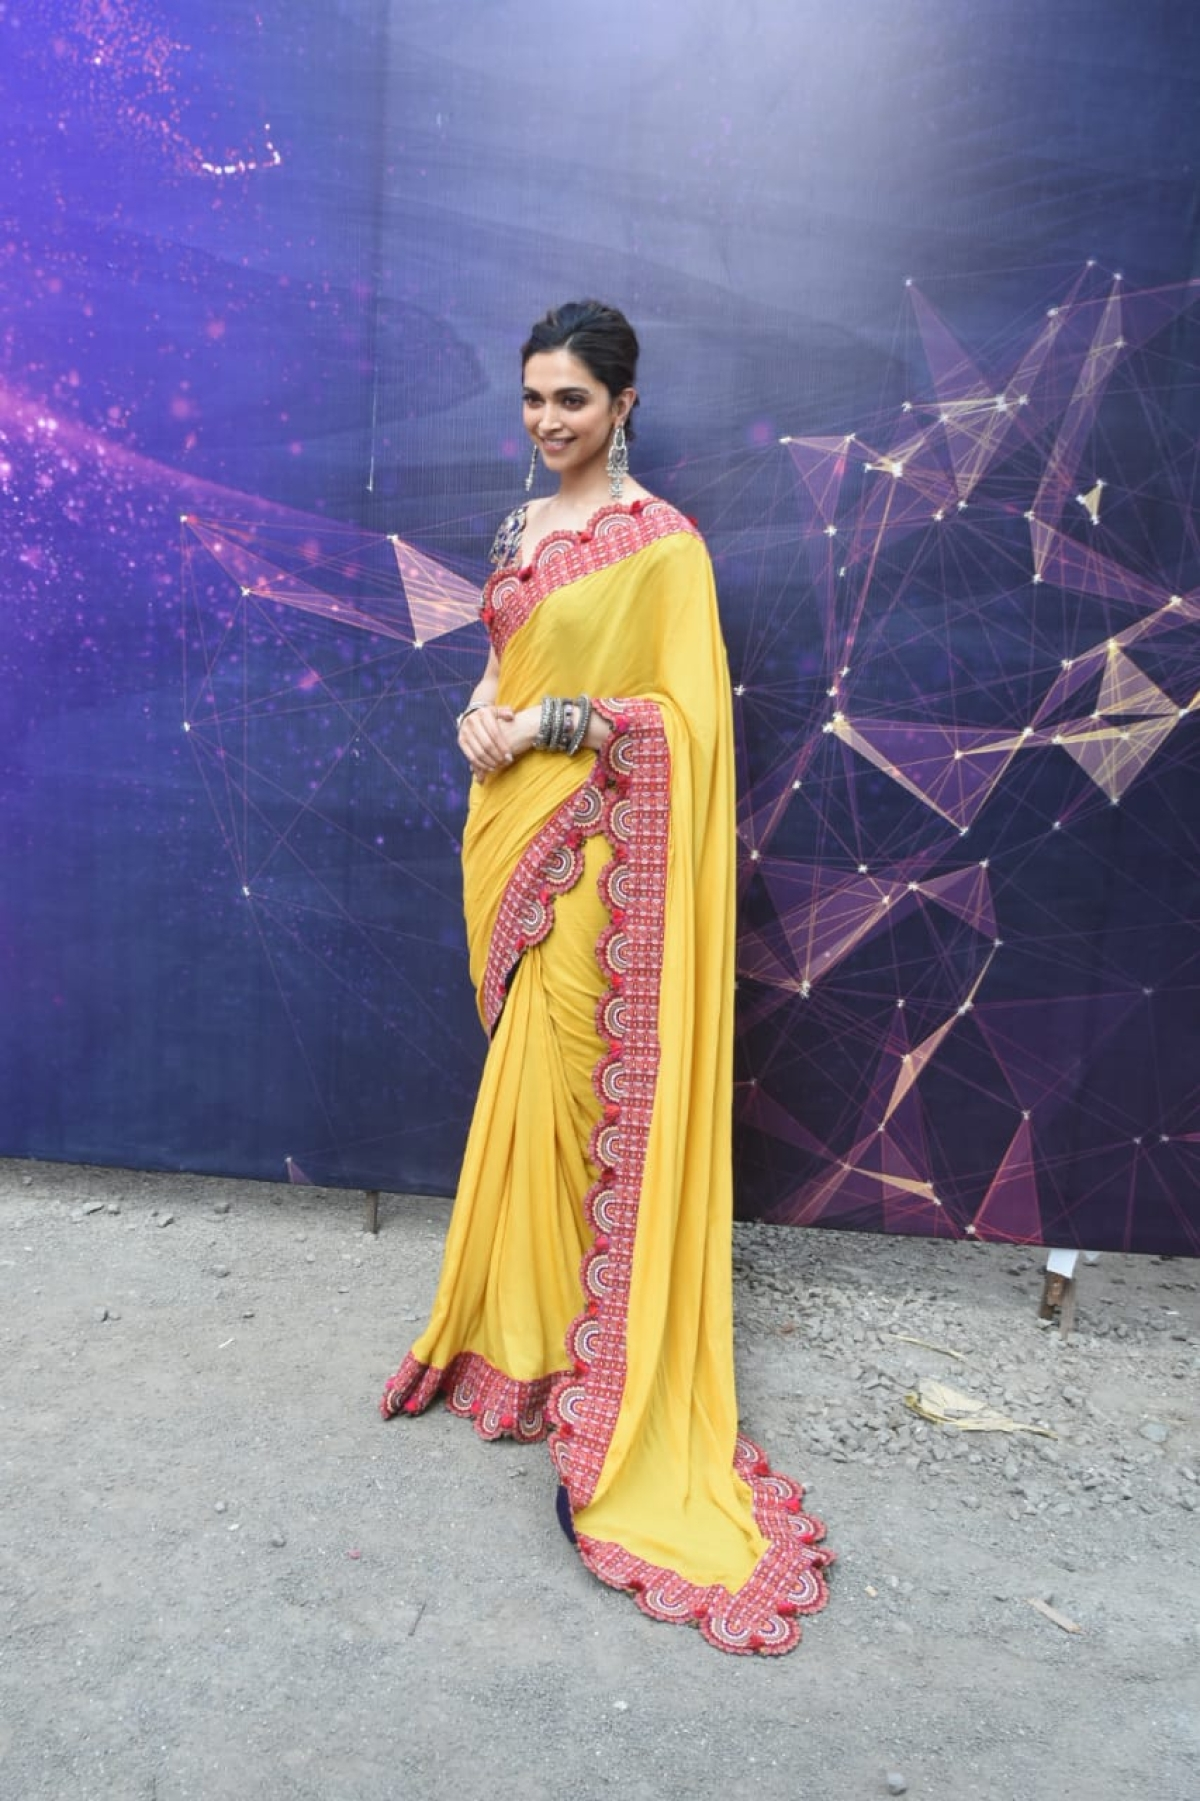 Deepika Padukone for Chapaak's promotions